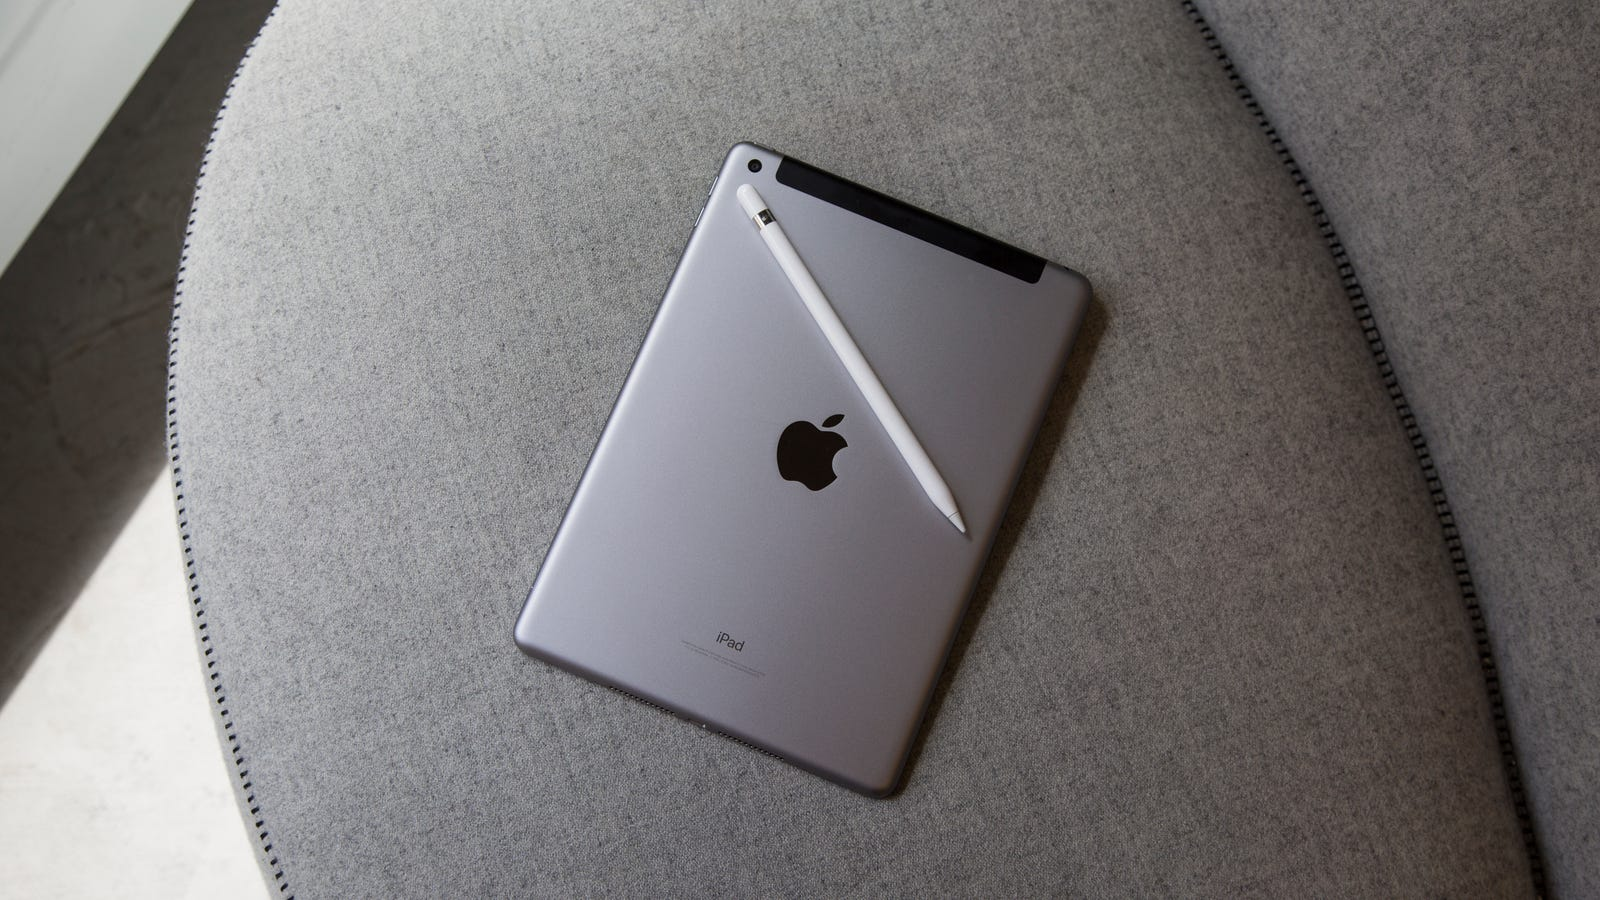 Apple's Current Gen iPad Is Back On Sale, Starting at $249